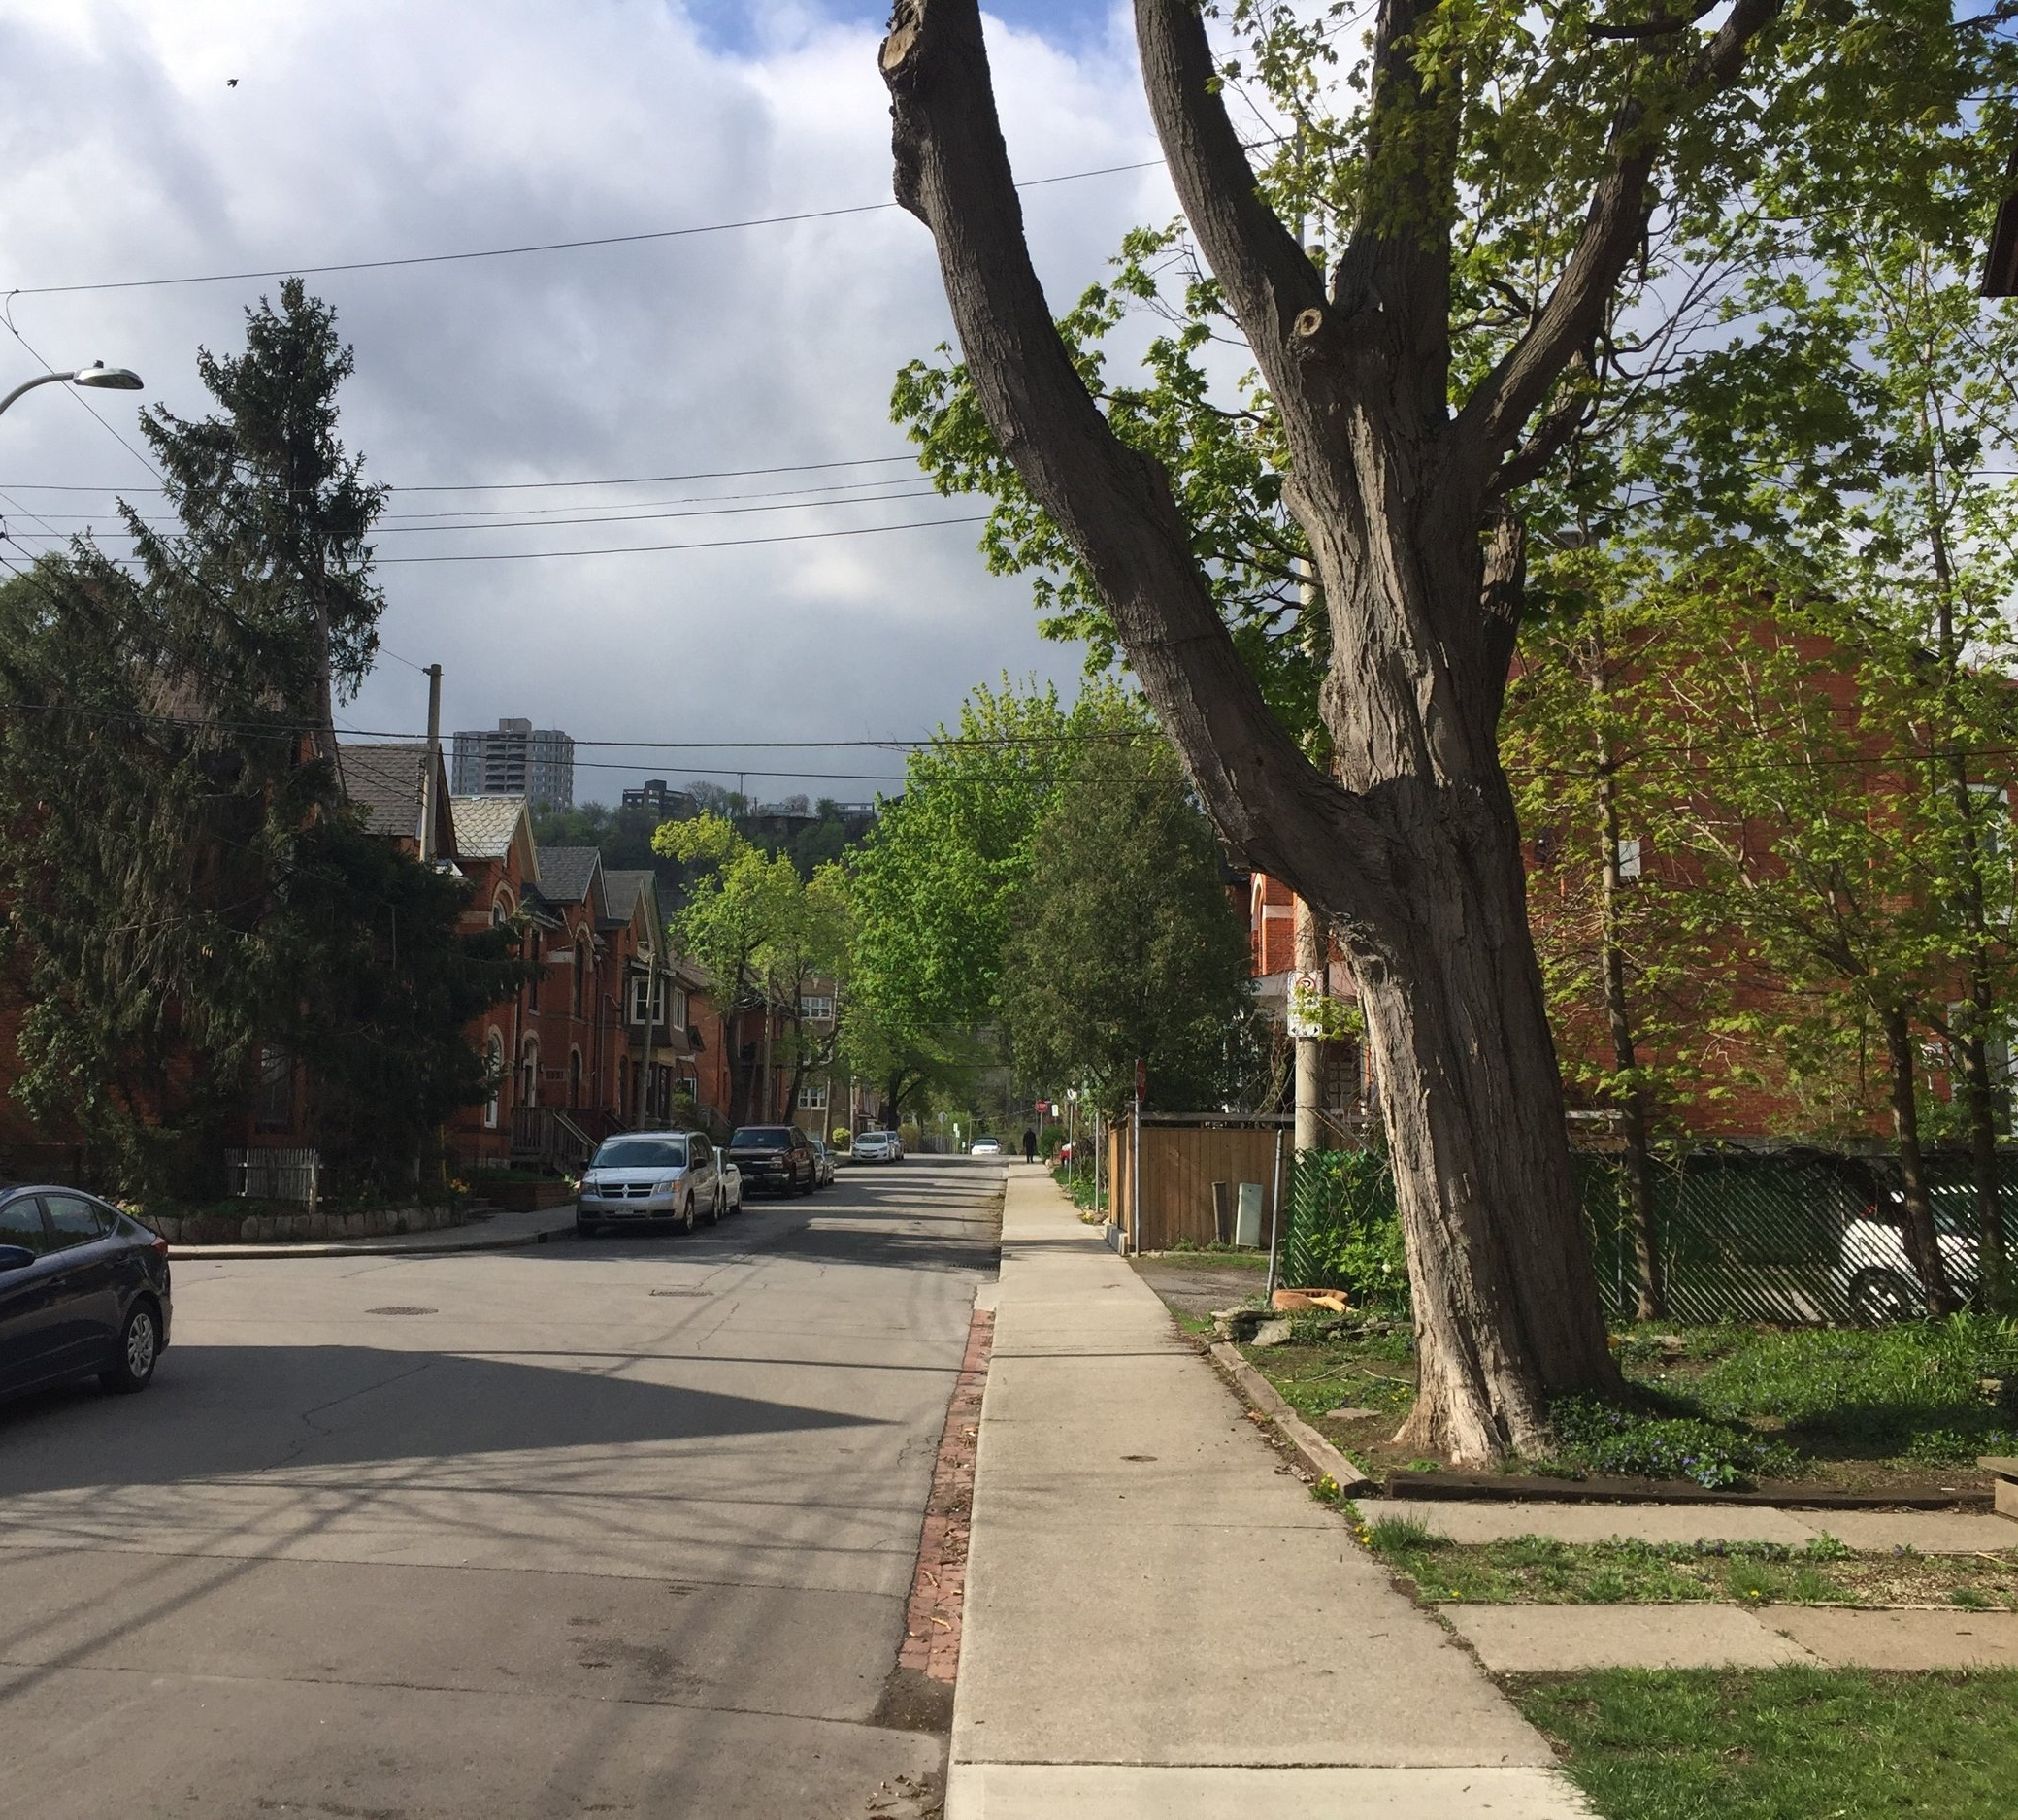 Many municipalities in southern Ontario have implemented tree protection by-laws and policies. Others are following suit.